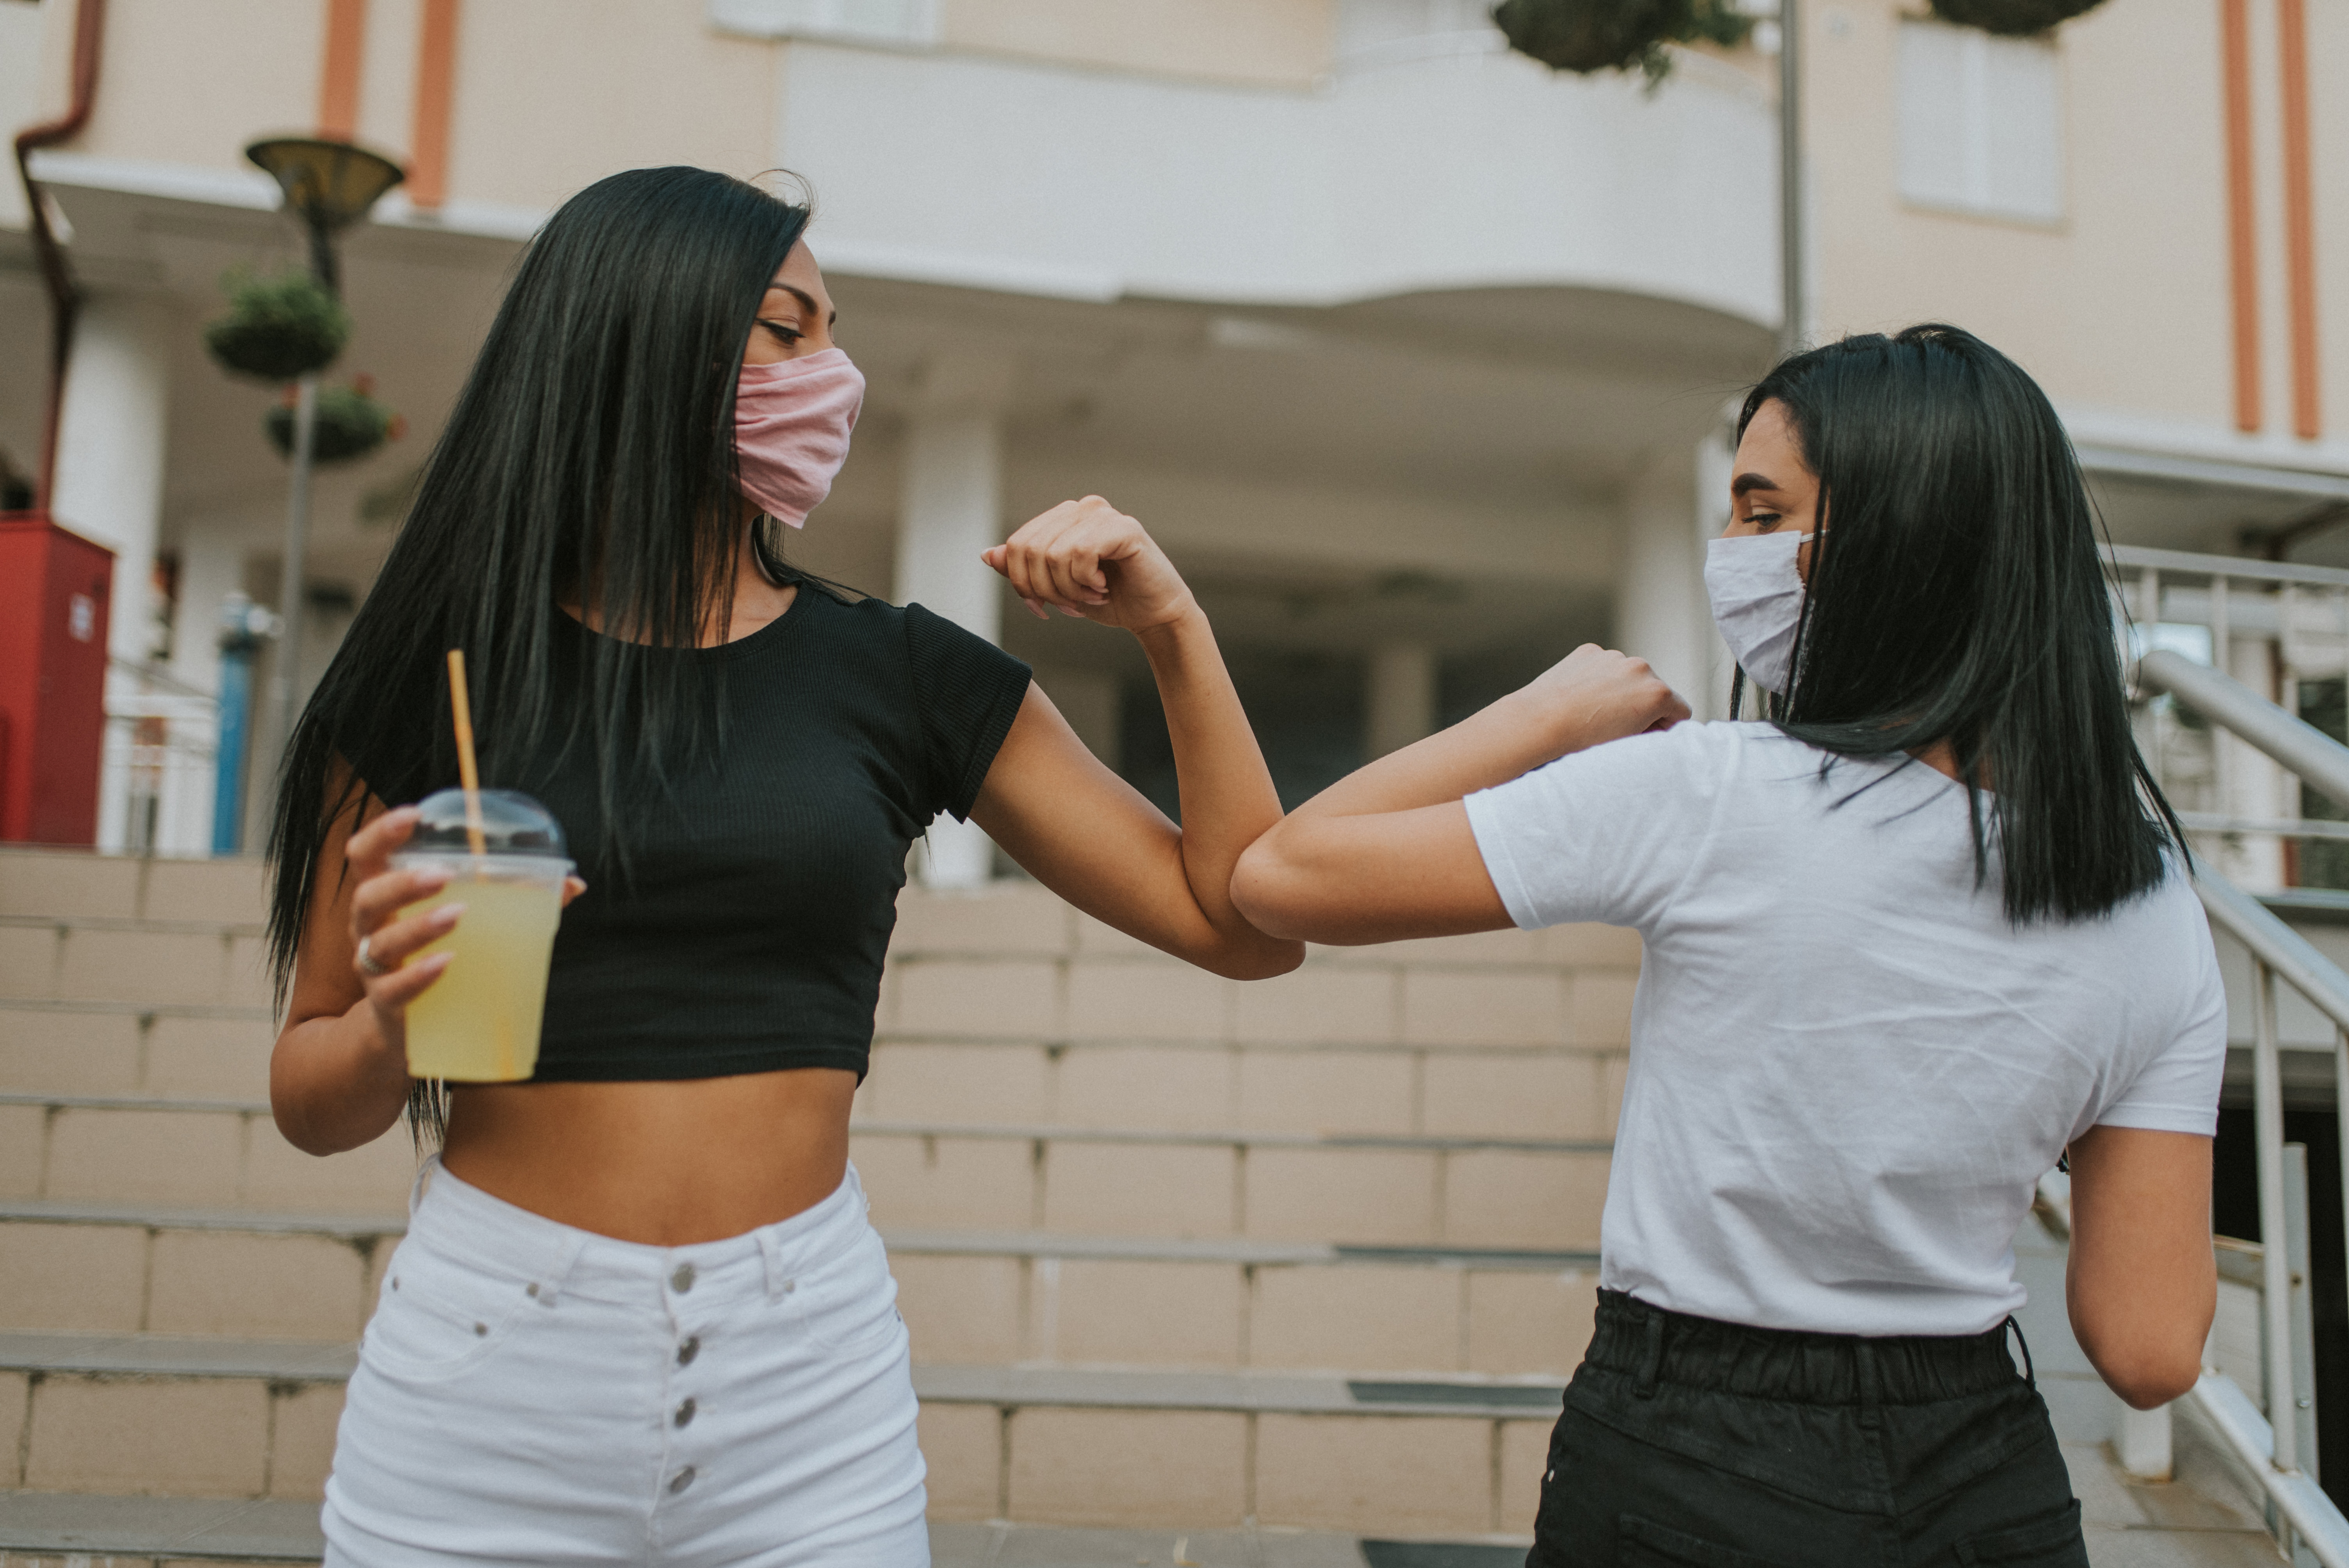 Two women wearing masks greet each other with elbow bumps.